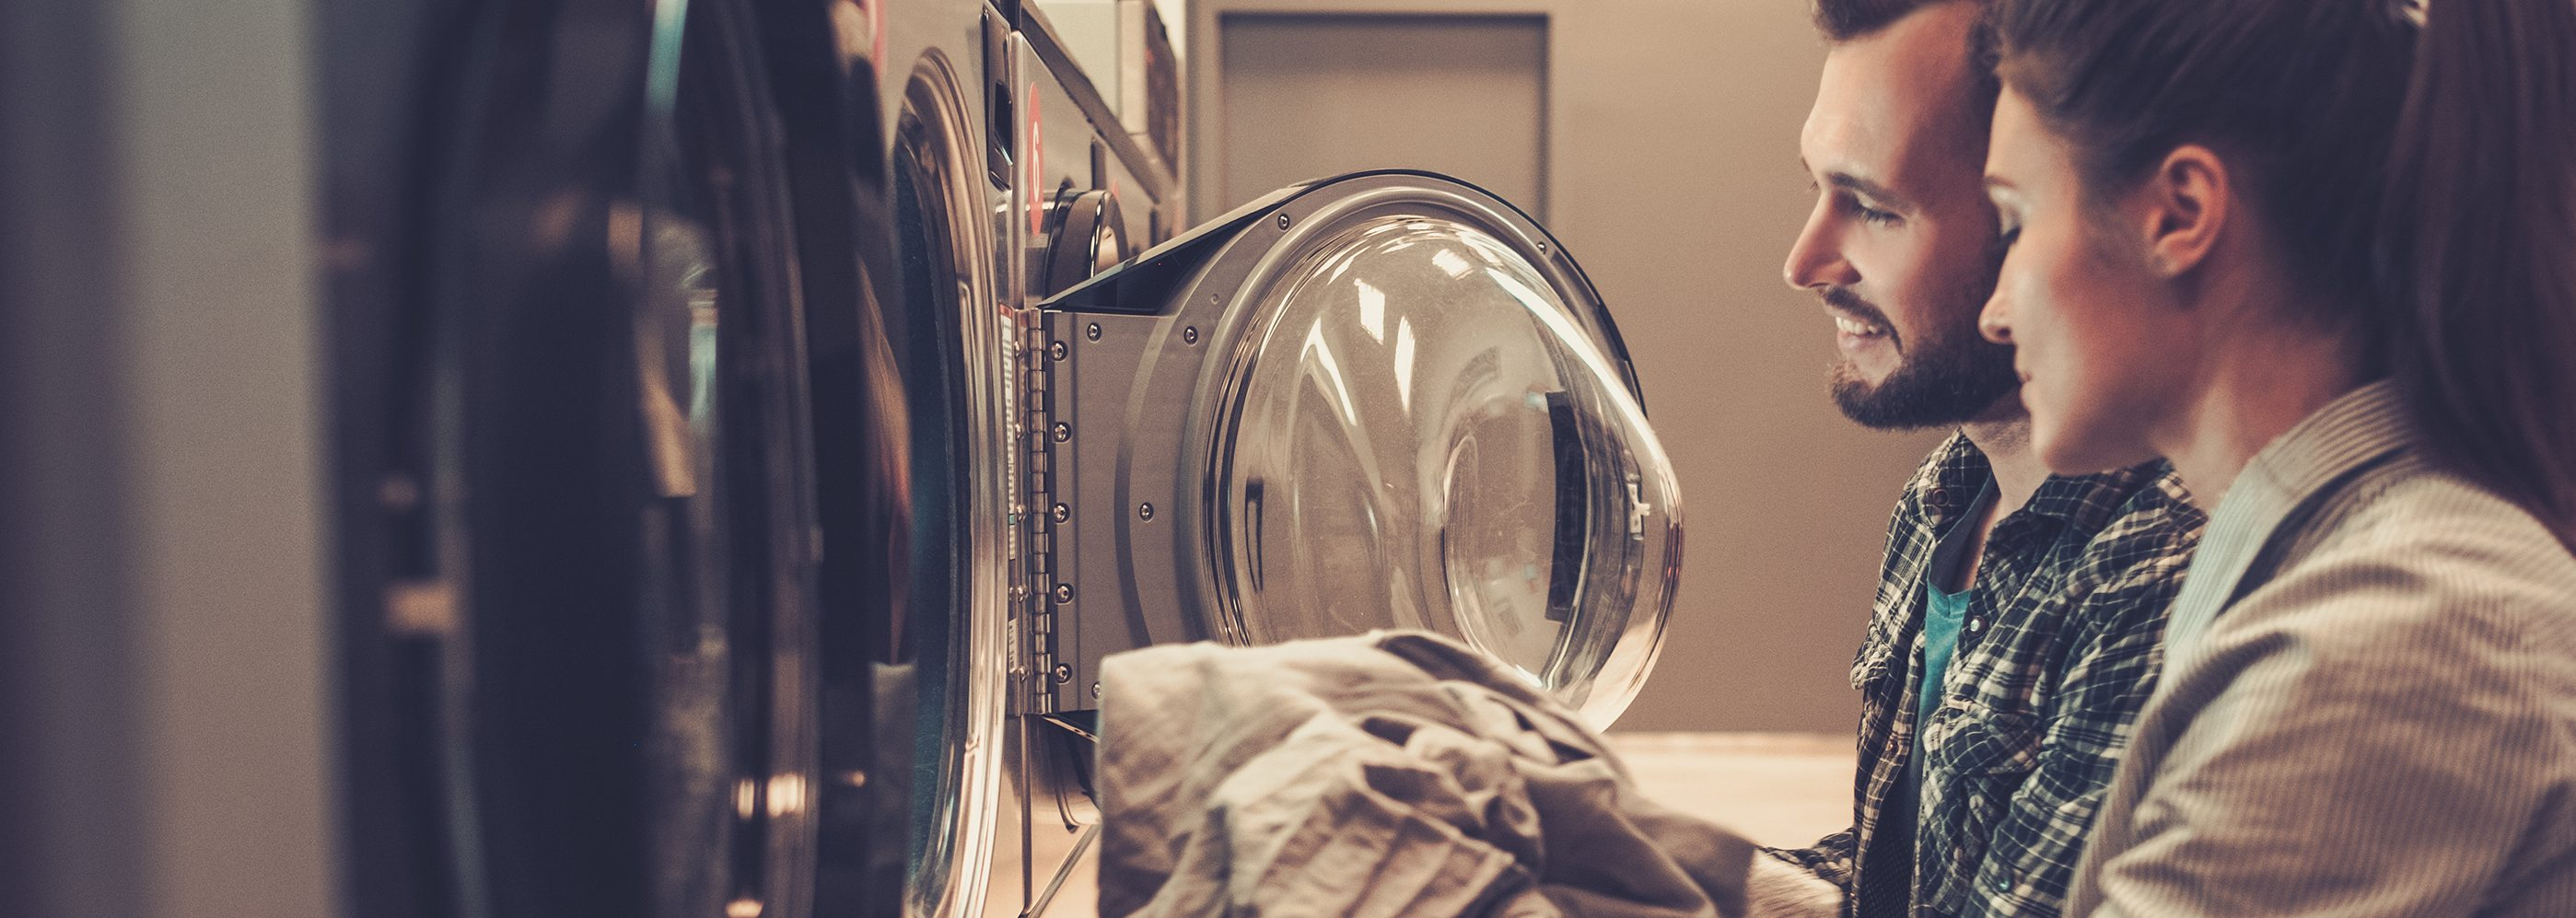 Should you repair or replace appliances?